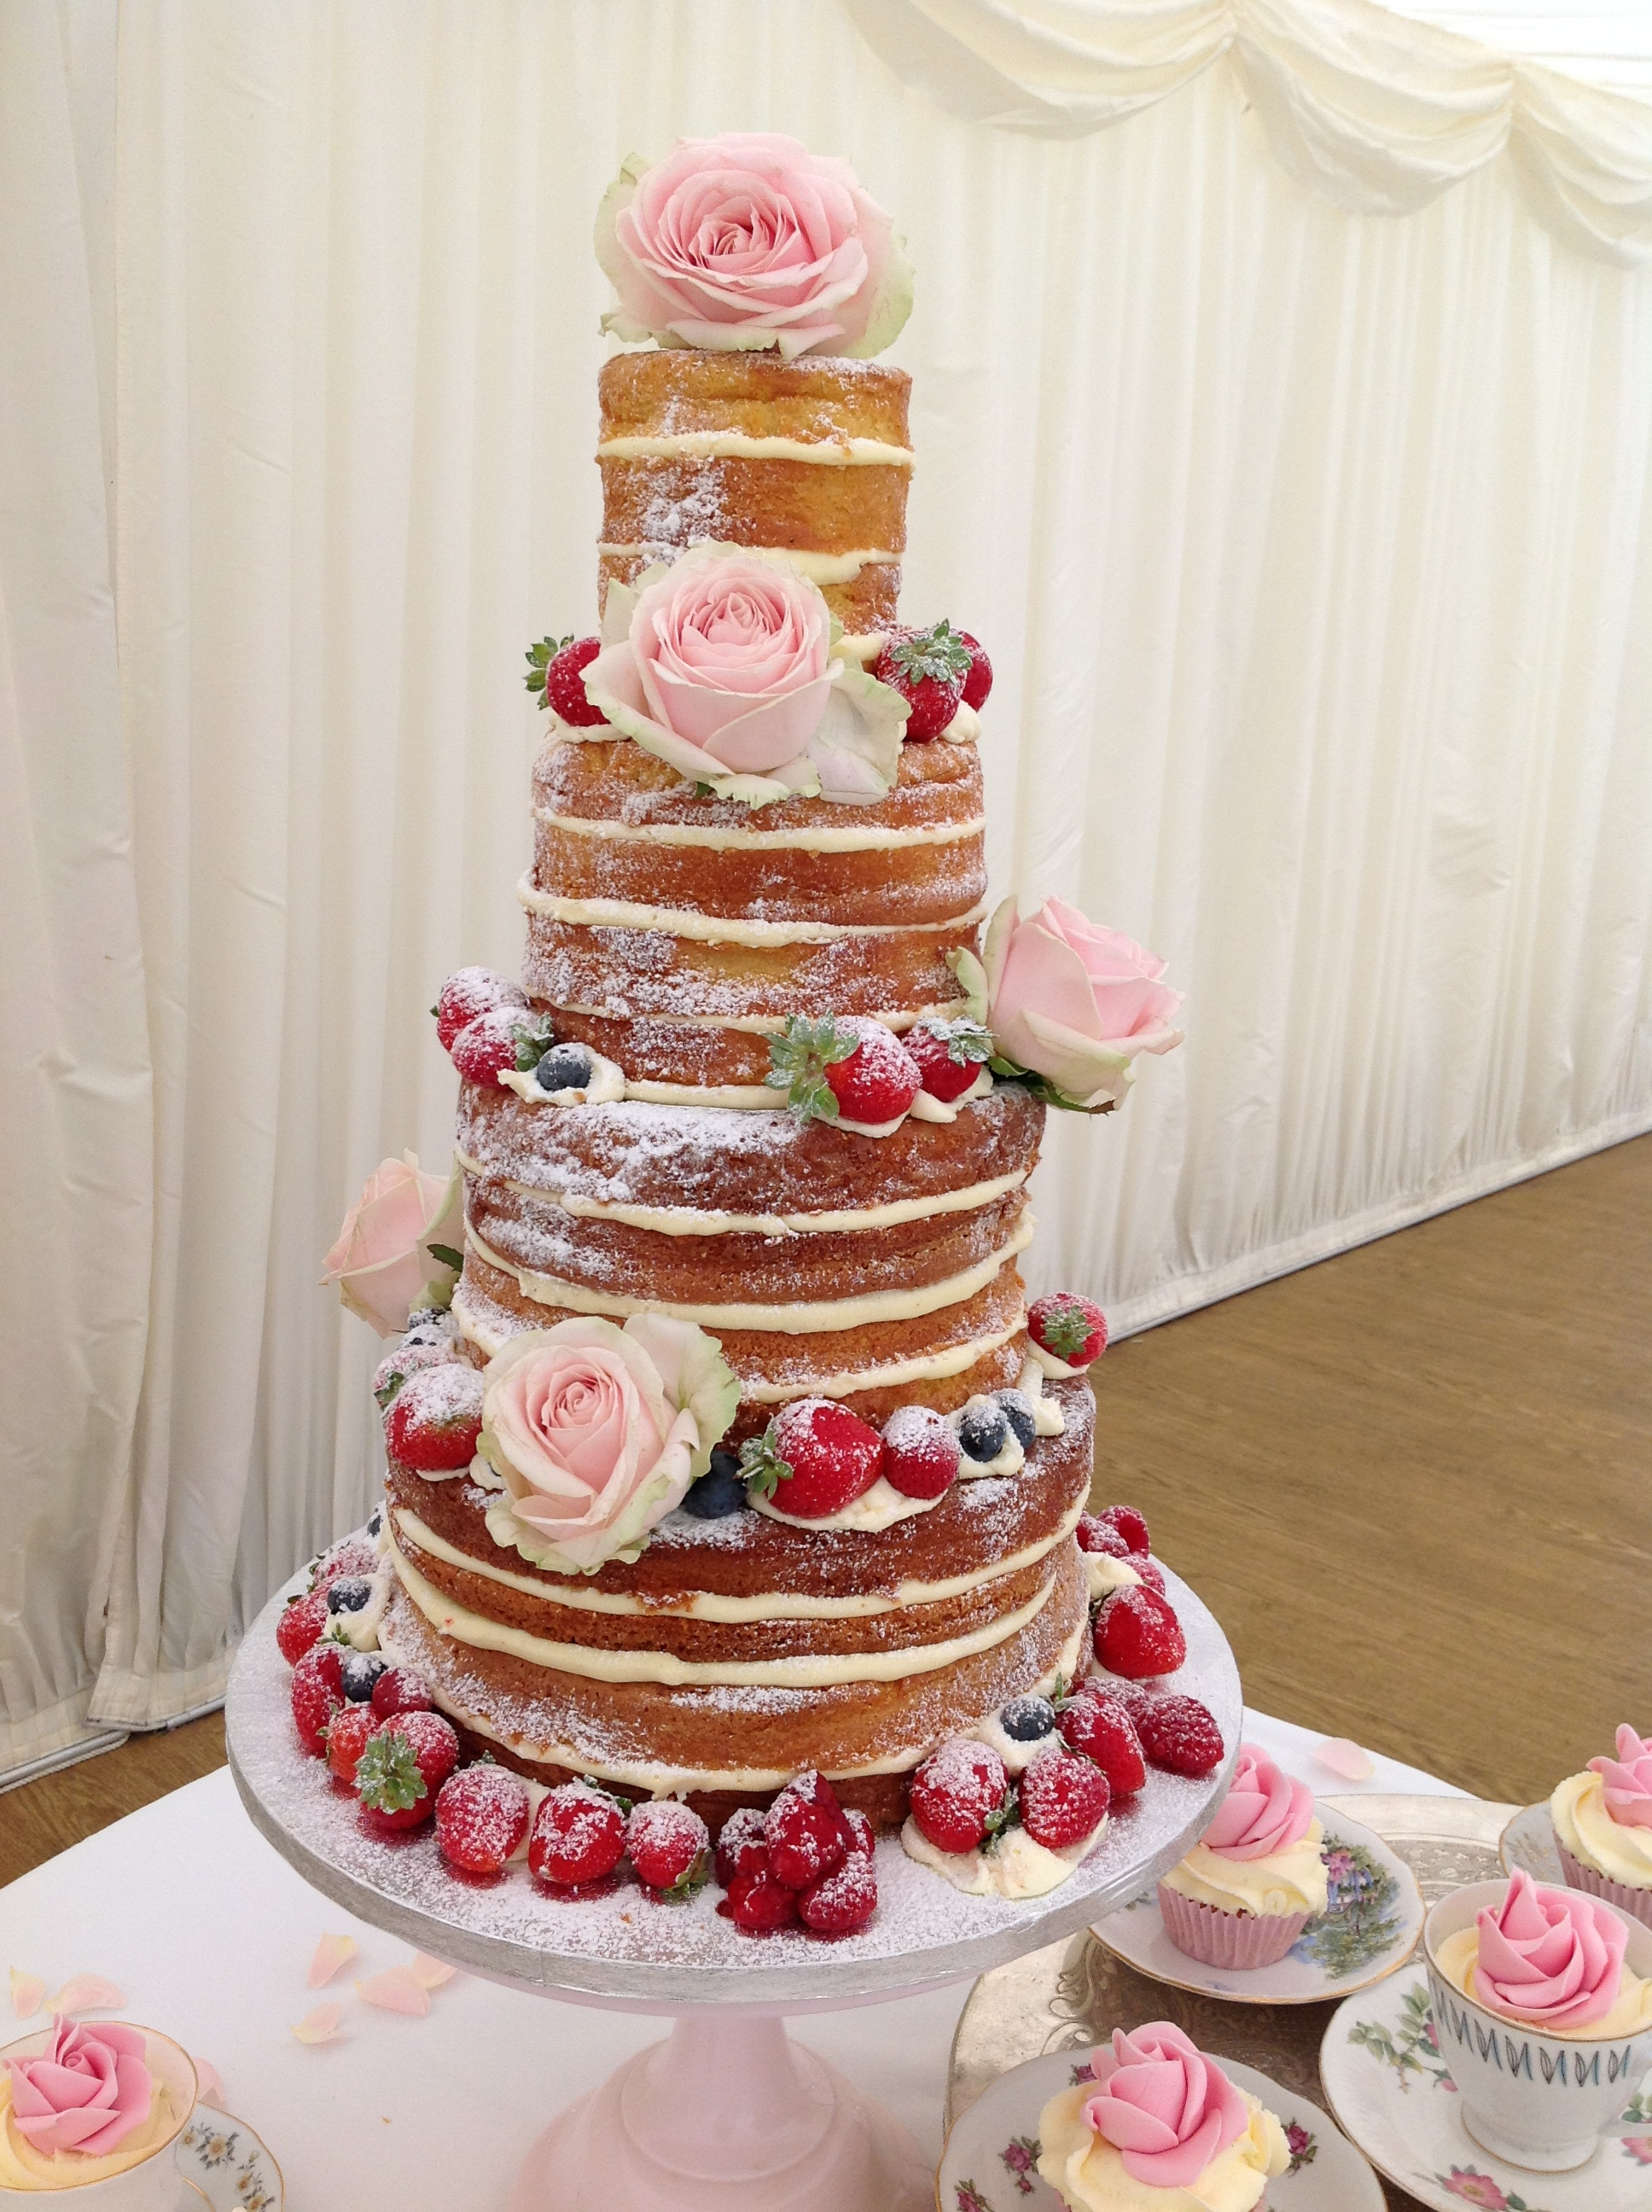 wedding cakes victoria australia let them eat cake the told and the untold 25877